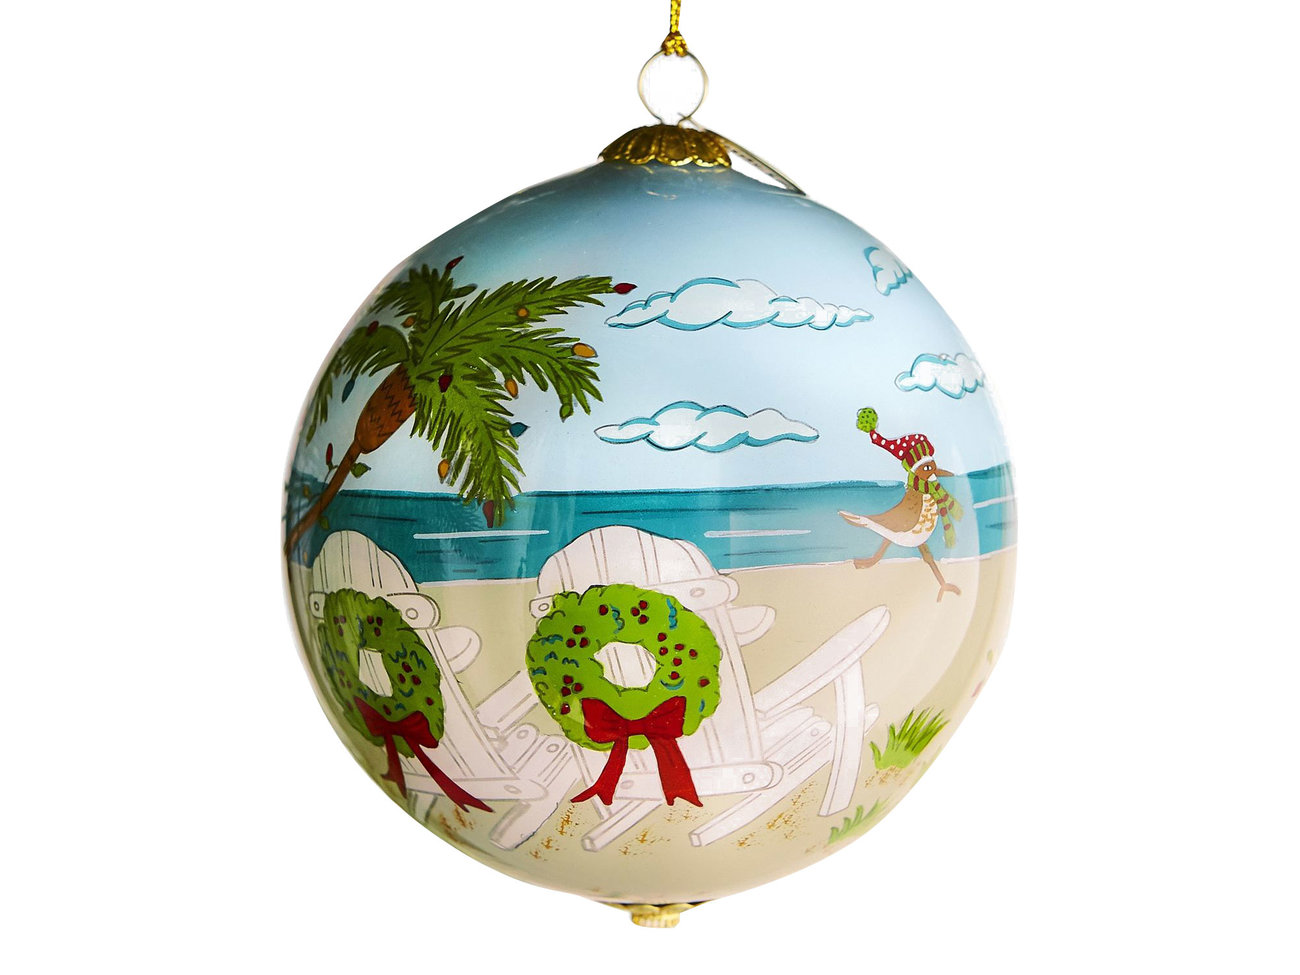 wreath-ball-ORNAMENTS0716.jpg